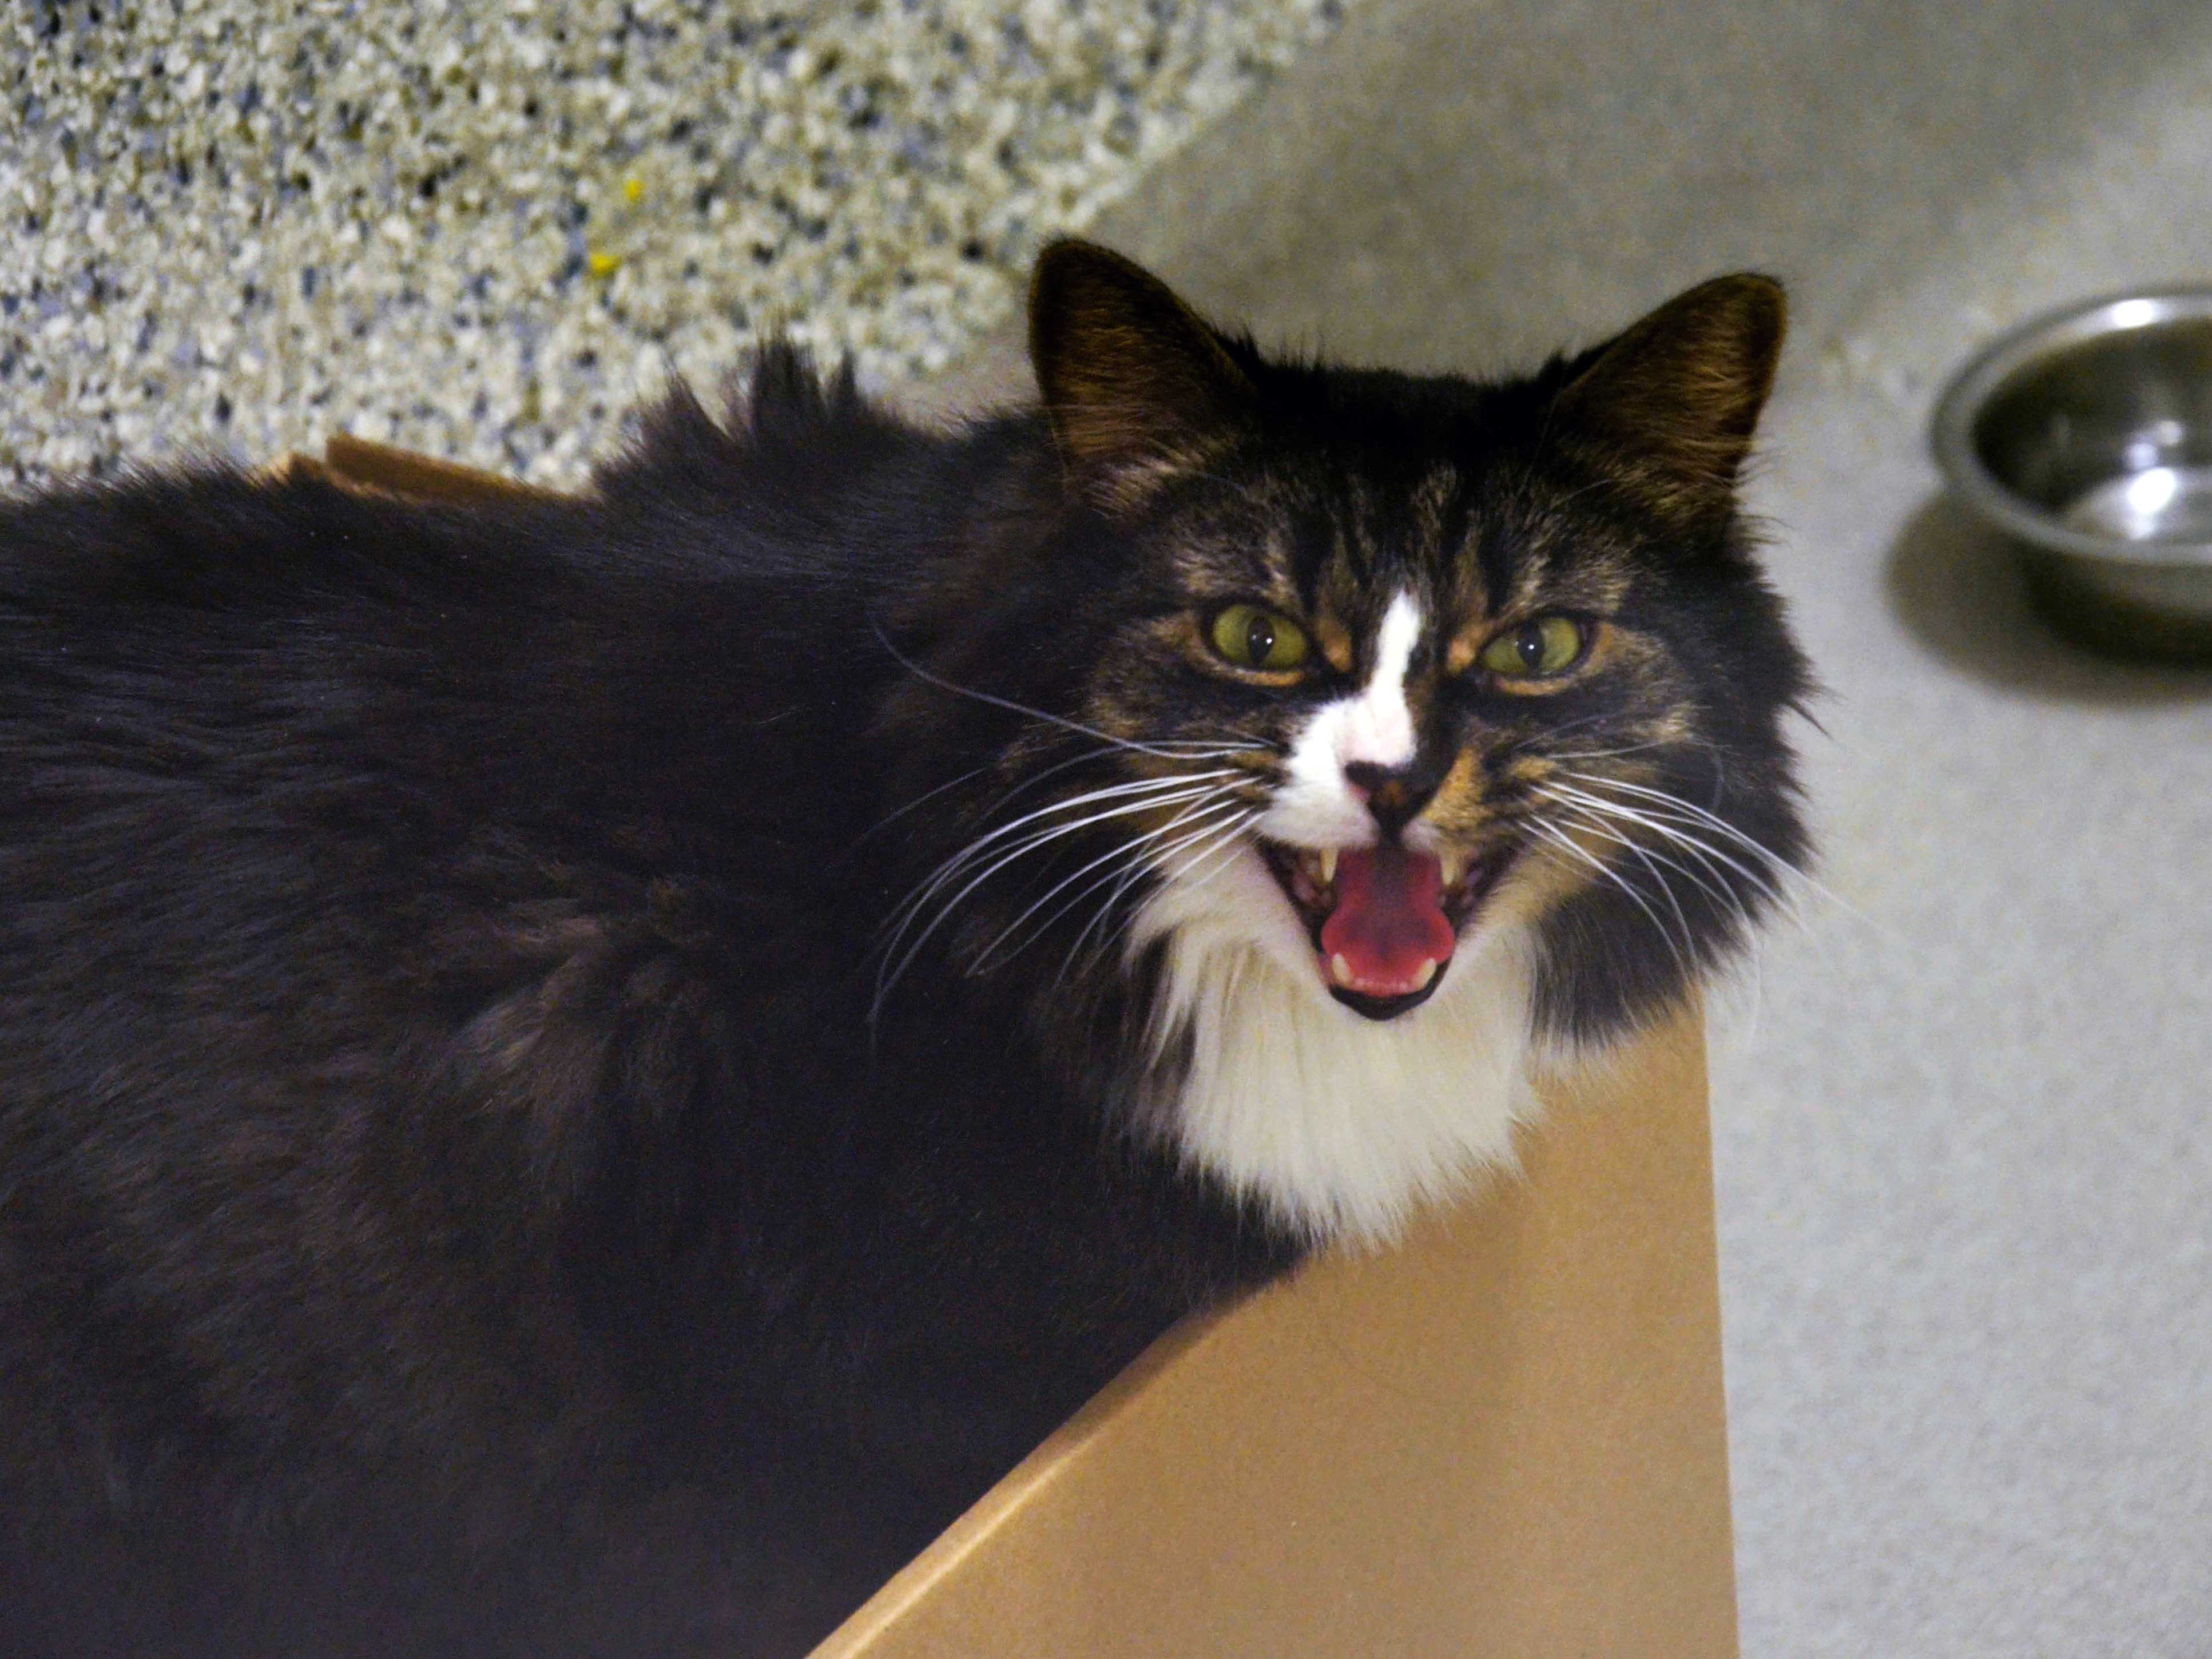 A cat at the Ottawa Humane Society growls from its enclosed pen. There is a water bowl on the ground behind the cat.